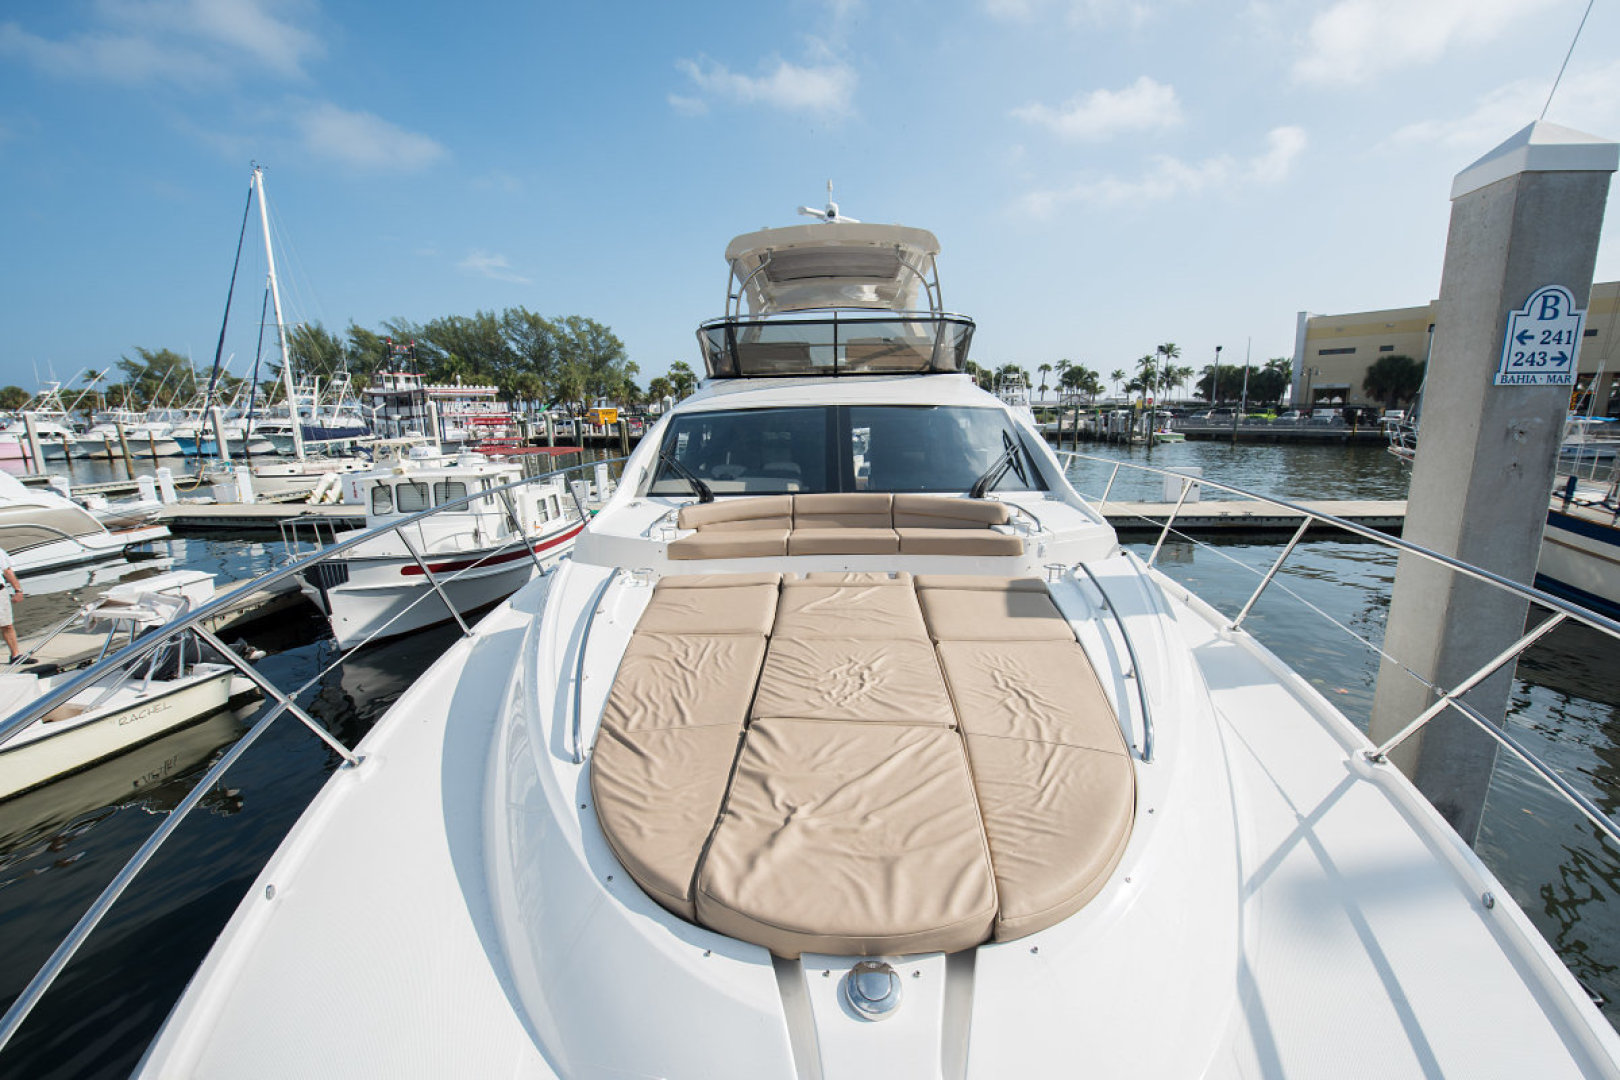 Sea Ray-L590 Fly 2016-2016 Sea Ray L590 Fly Ft. Lauderdale-Florida-United States-1284619 | Thumbnail